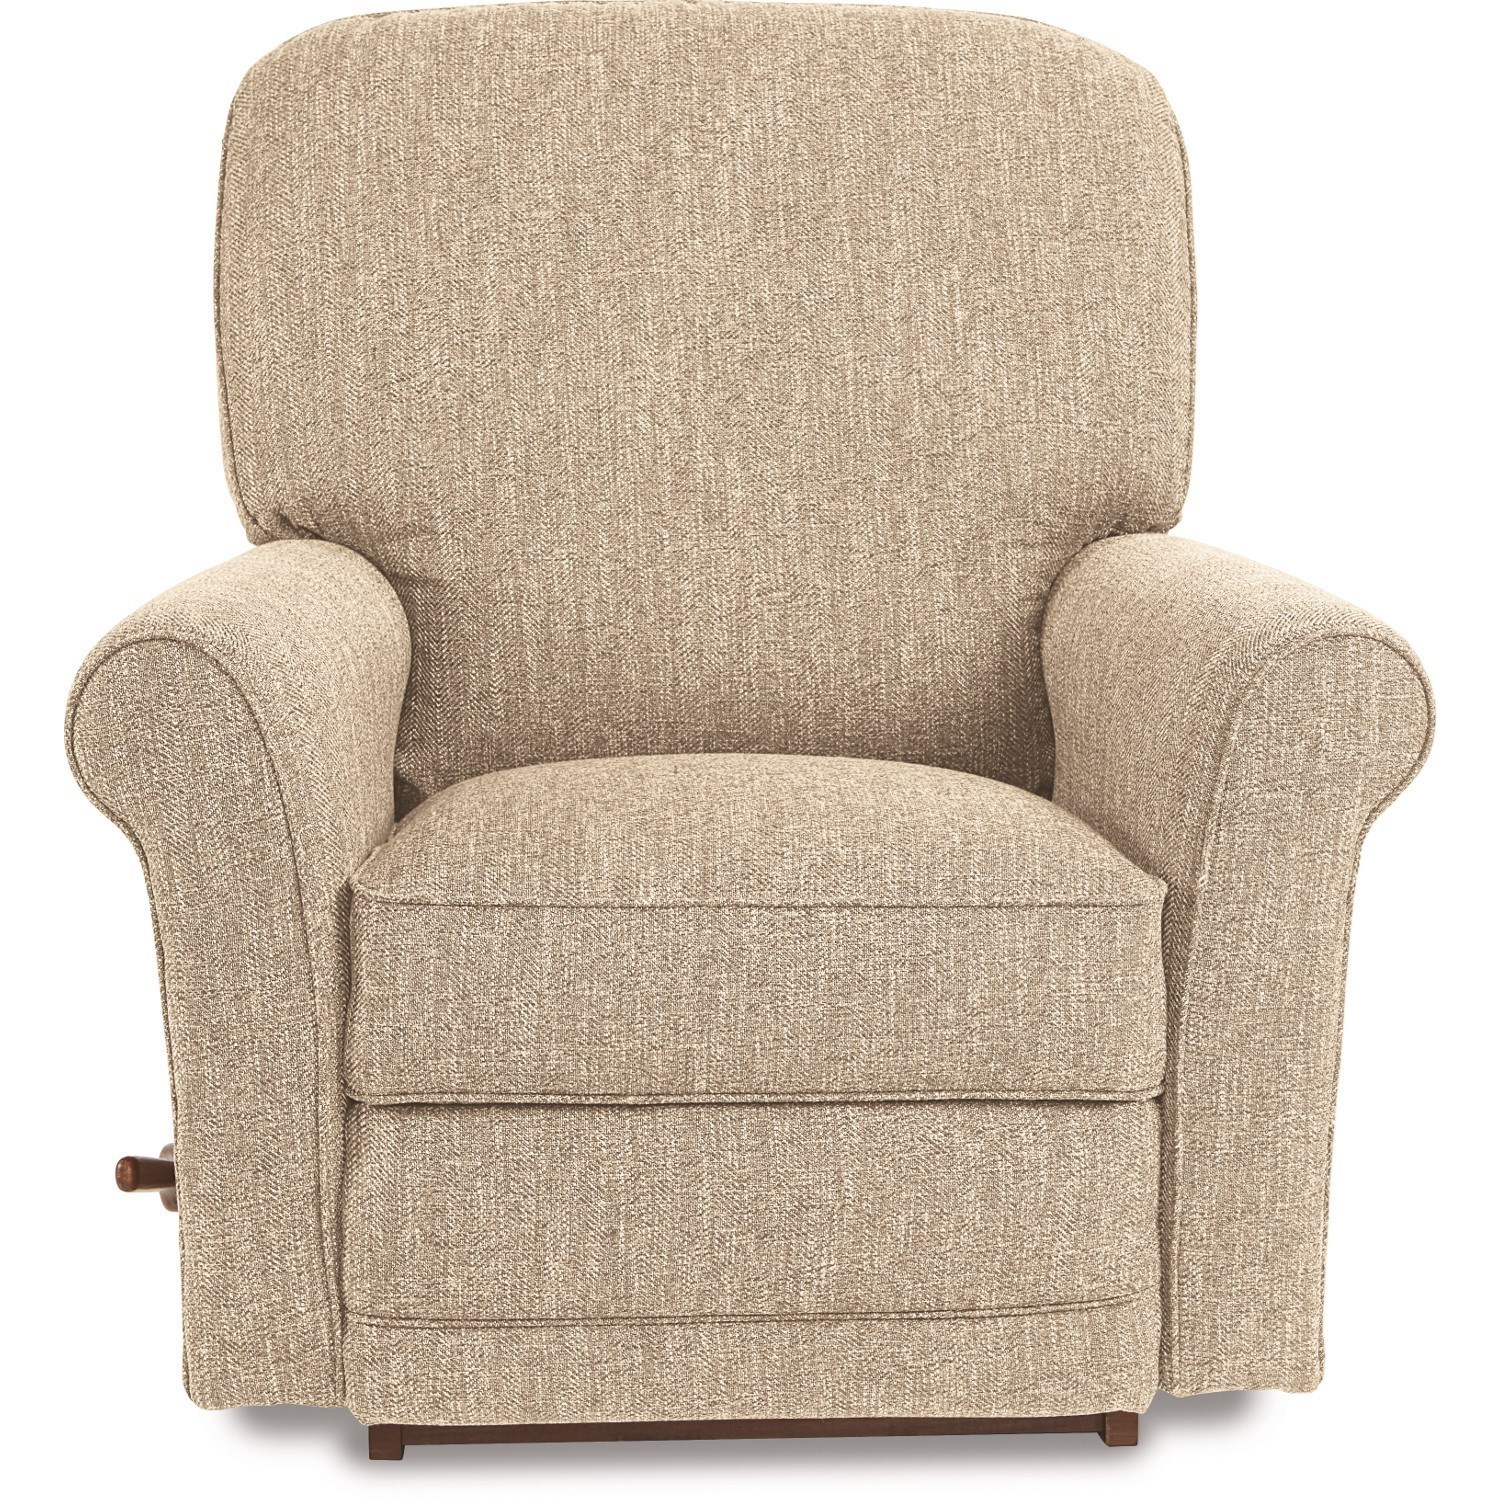 Addison RECLINA-WAY® Wall Recliner by La-Z-Boy at Lynn's Furniture & Mattress